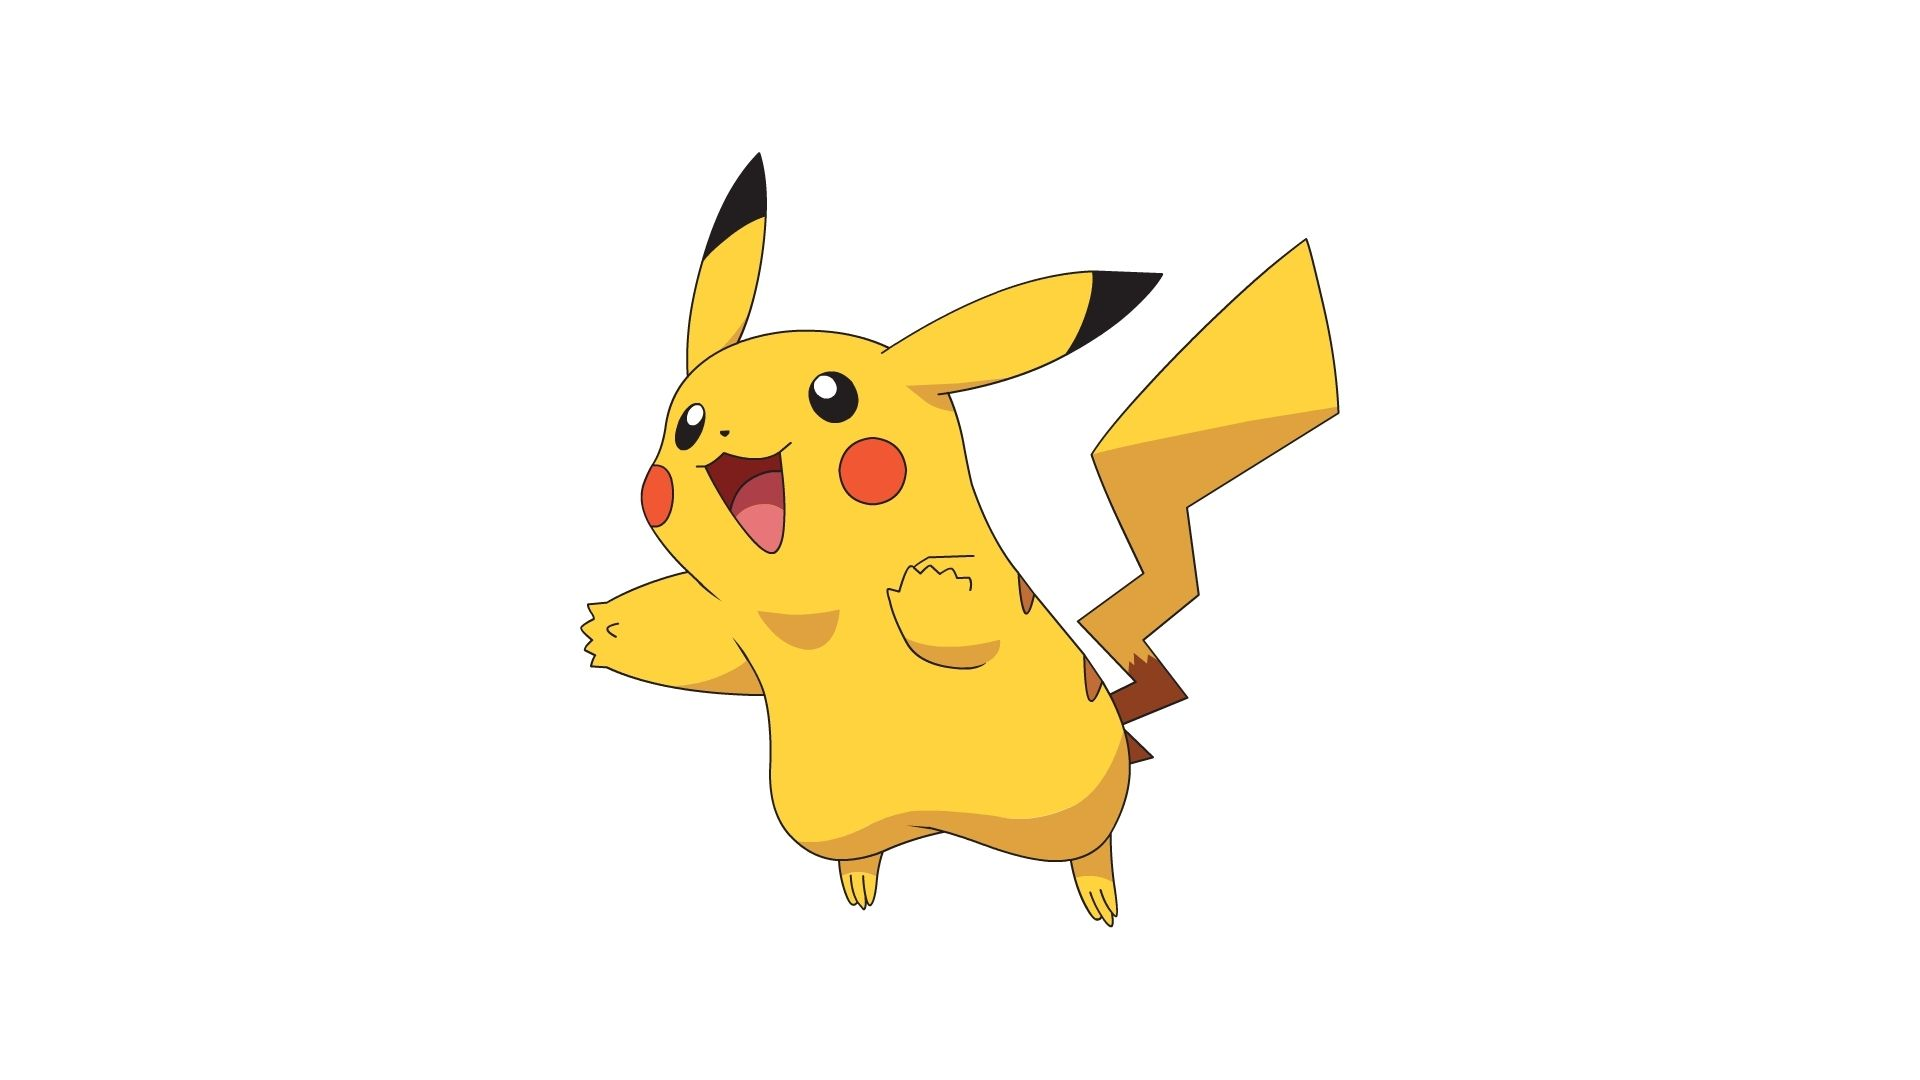 Cute Pokemon Iphone 6 Wallpaper Pikachu Wallpapers High Quality Download Free